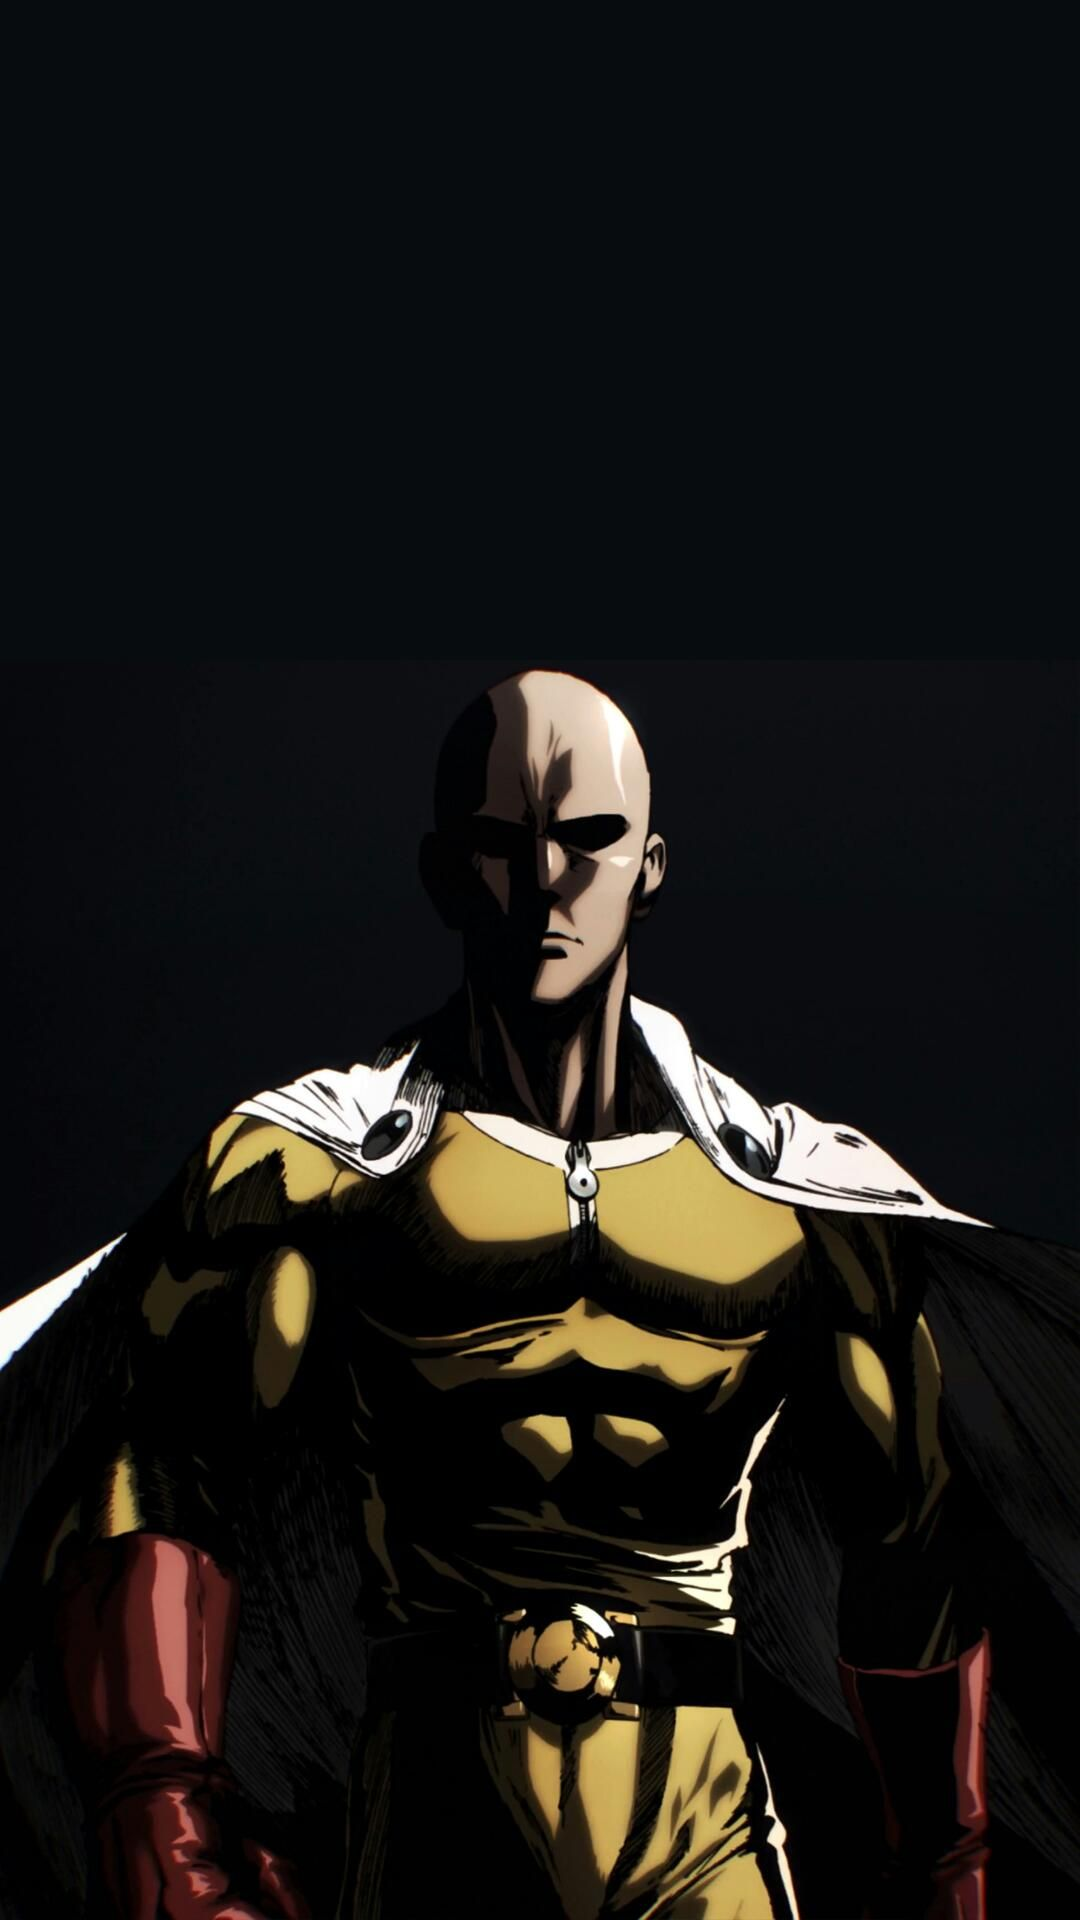 Amoled Anime Wallpapers Manga De One Punch Man Chica De Anime